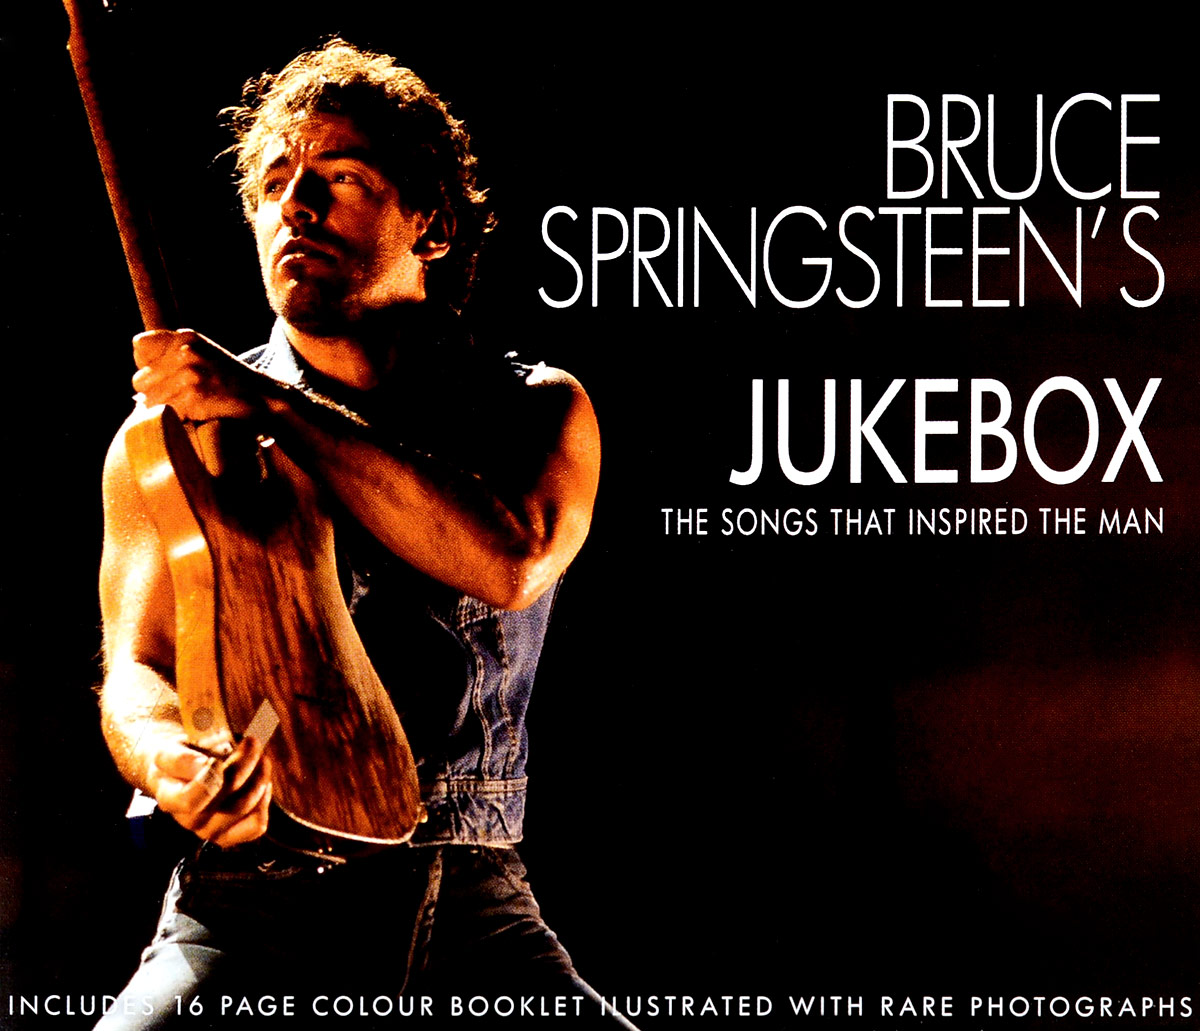 Брюс Спрингстин Bruce Springsteen's. Jukebox: The Songs That Inspired the Man adriatica часы adriatica 3146 521gq коллекция twin